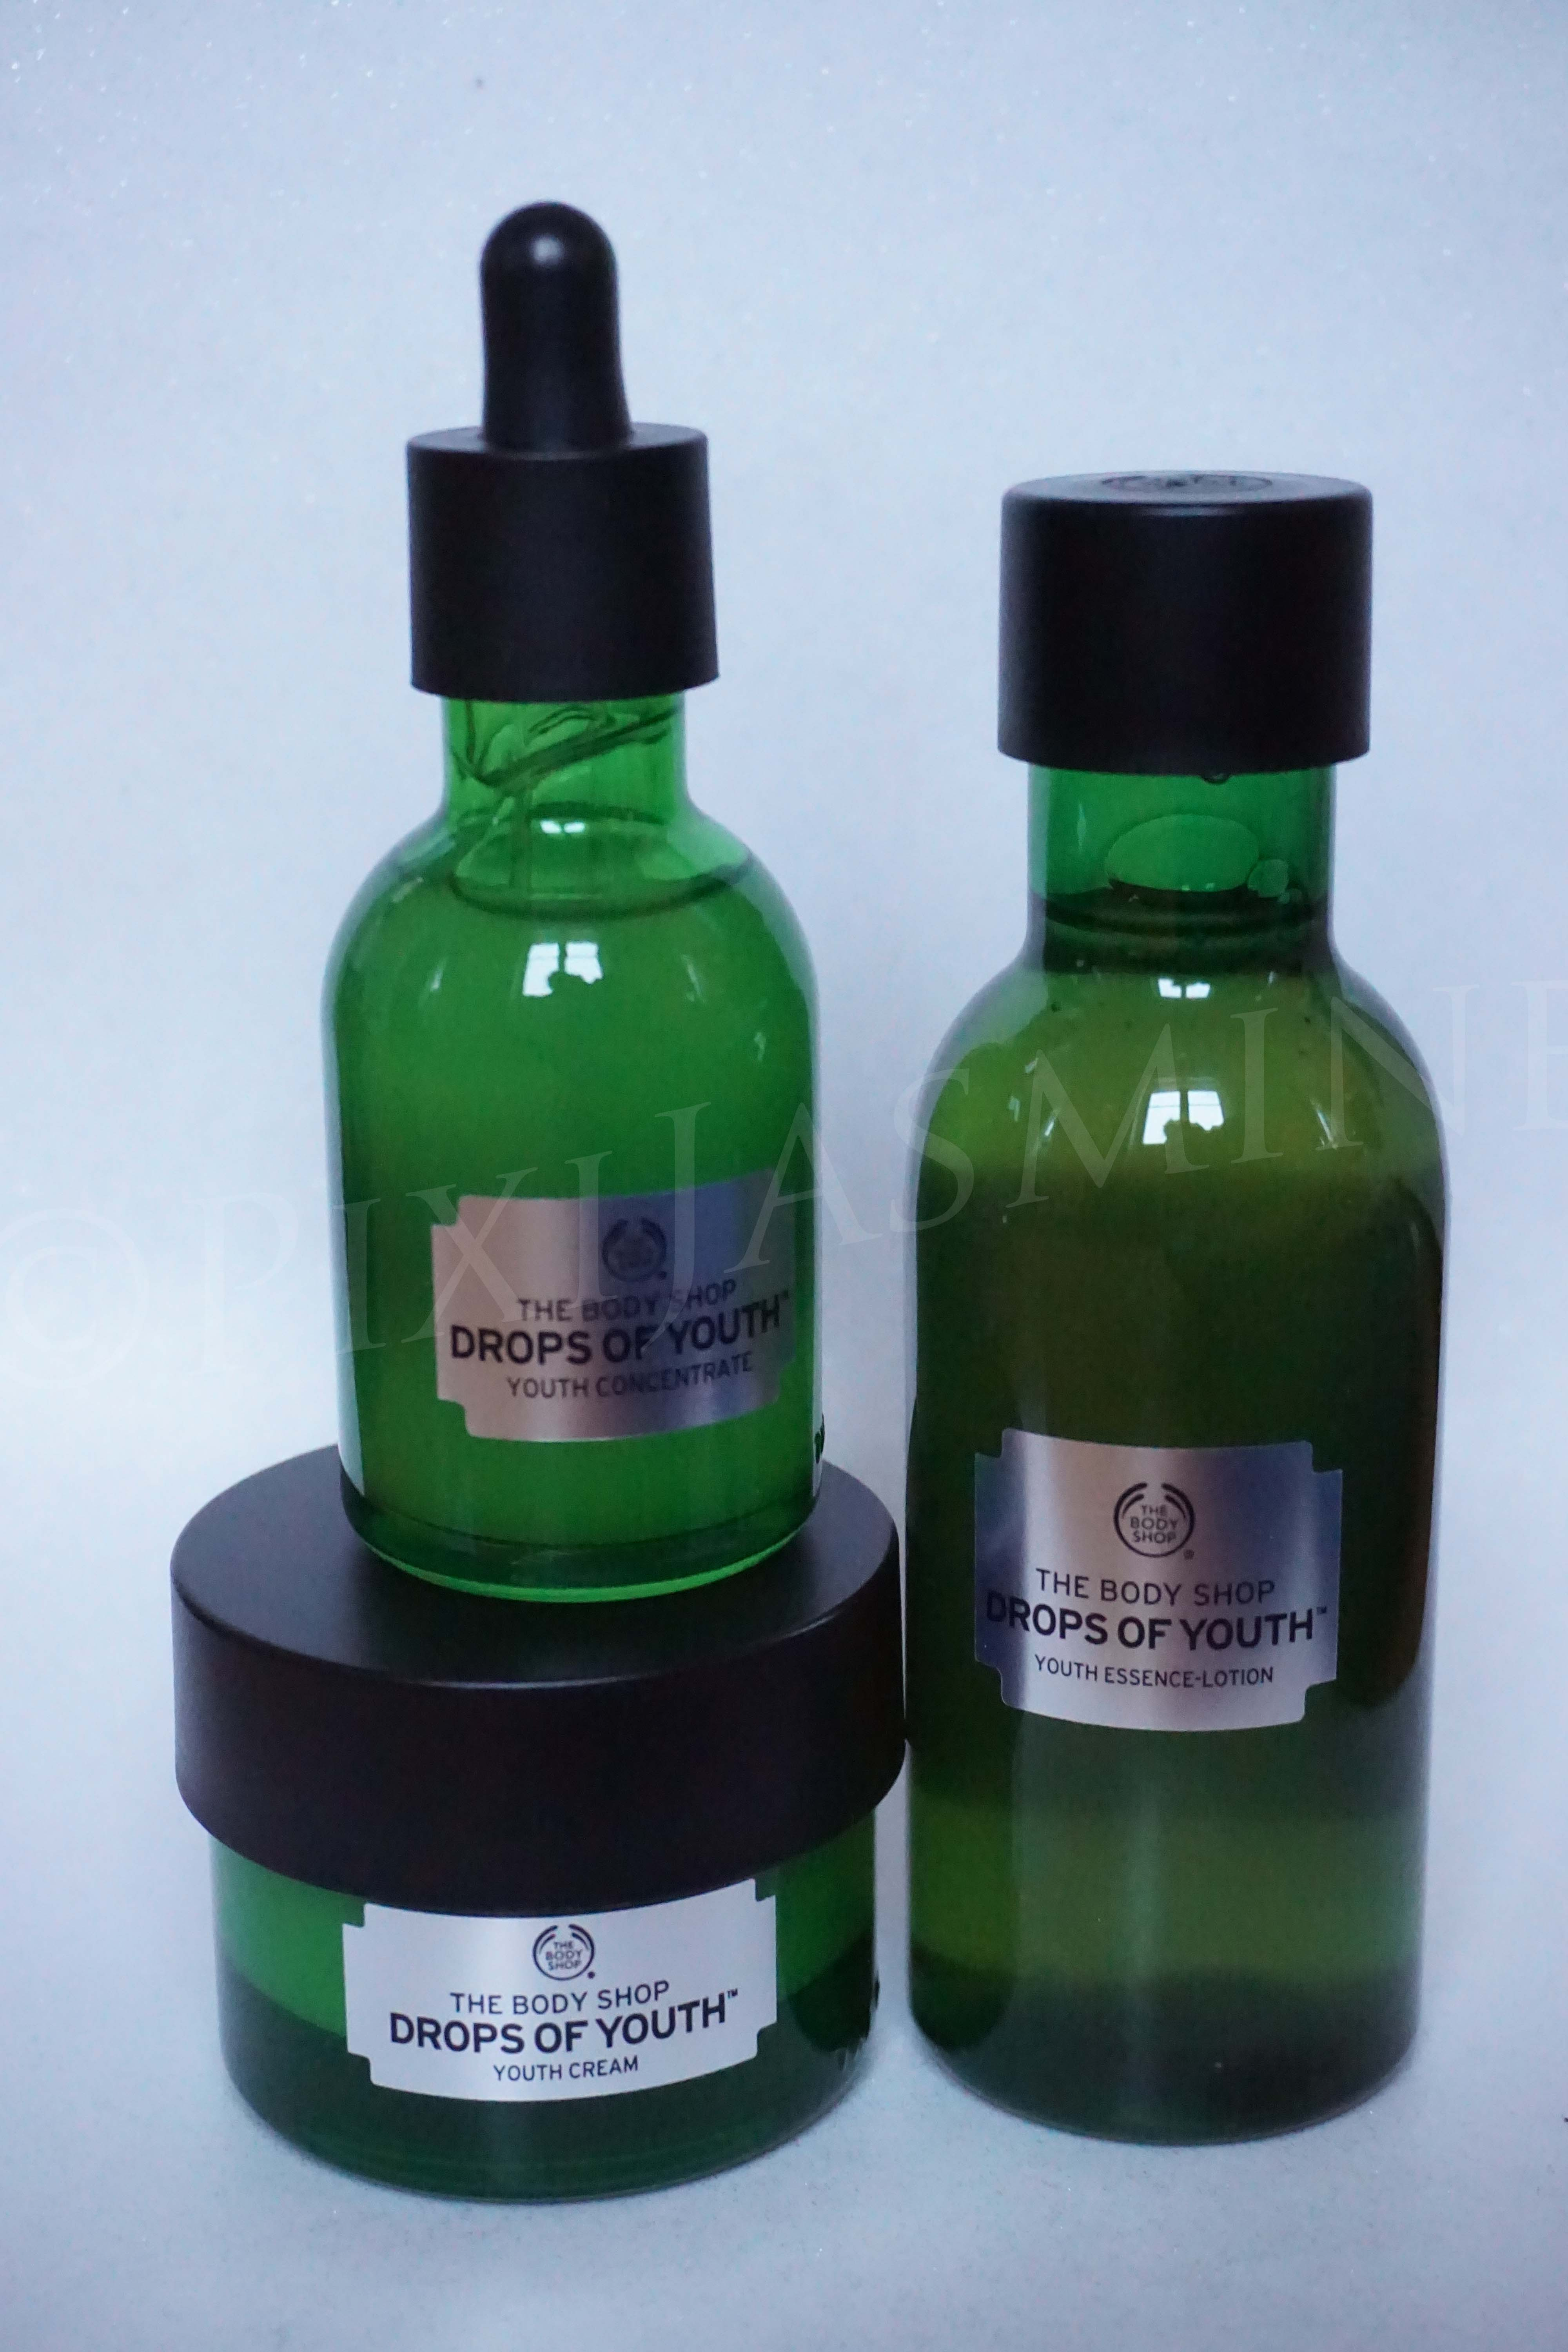 The Body Shop Drops of Youth Series